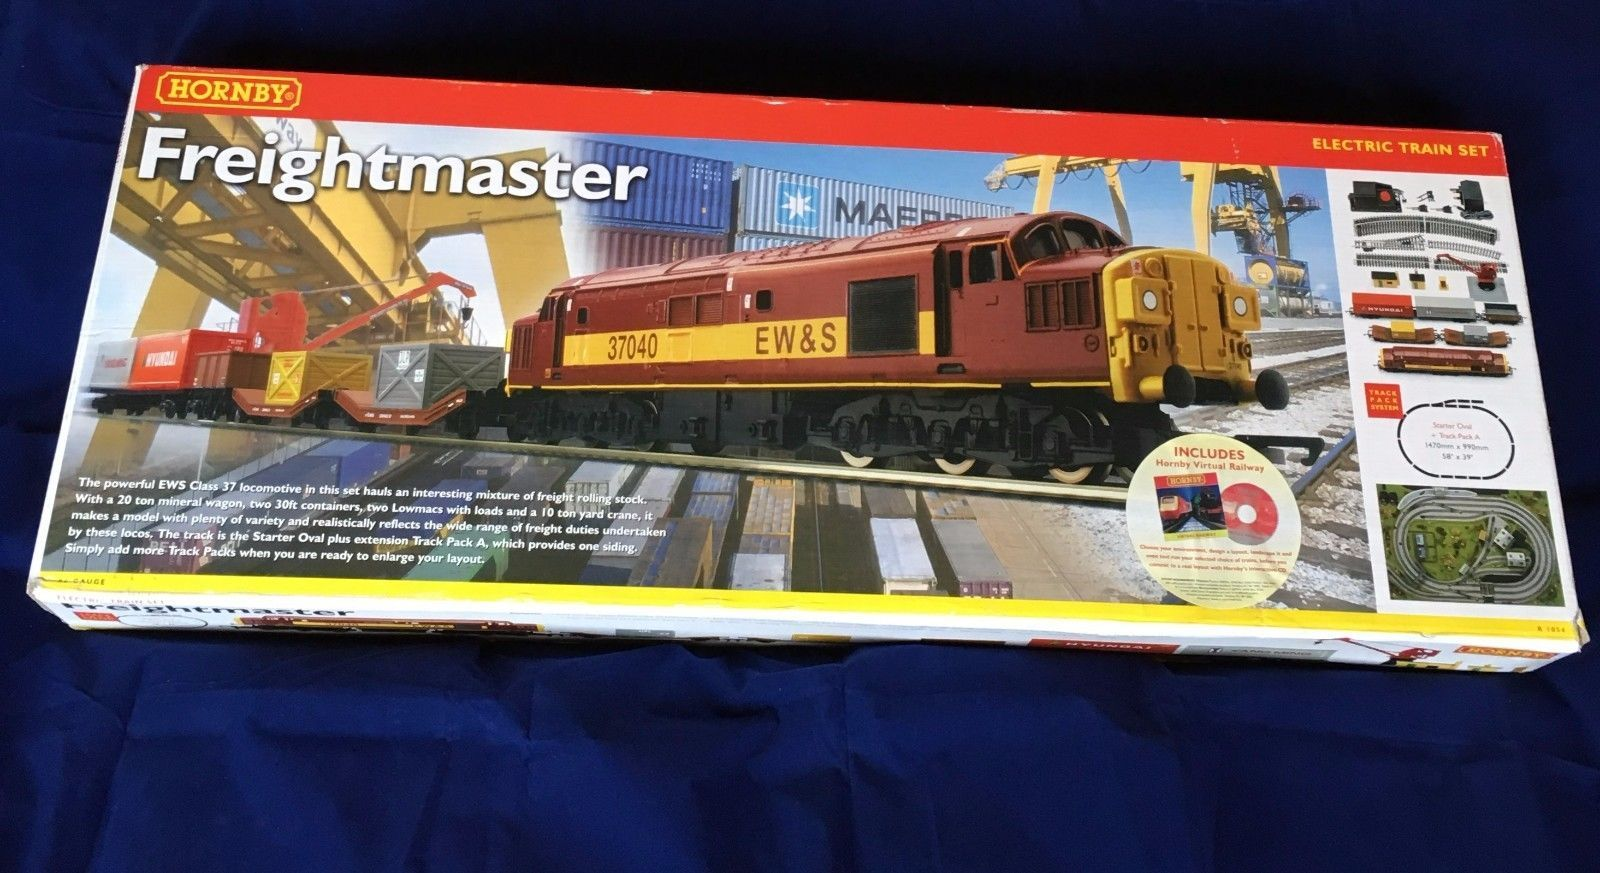 Pin by Patrick Curran on Hornby Trains | Electric train sets